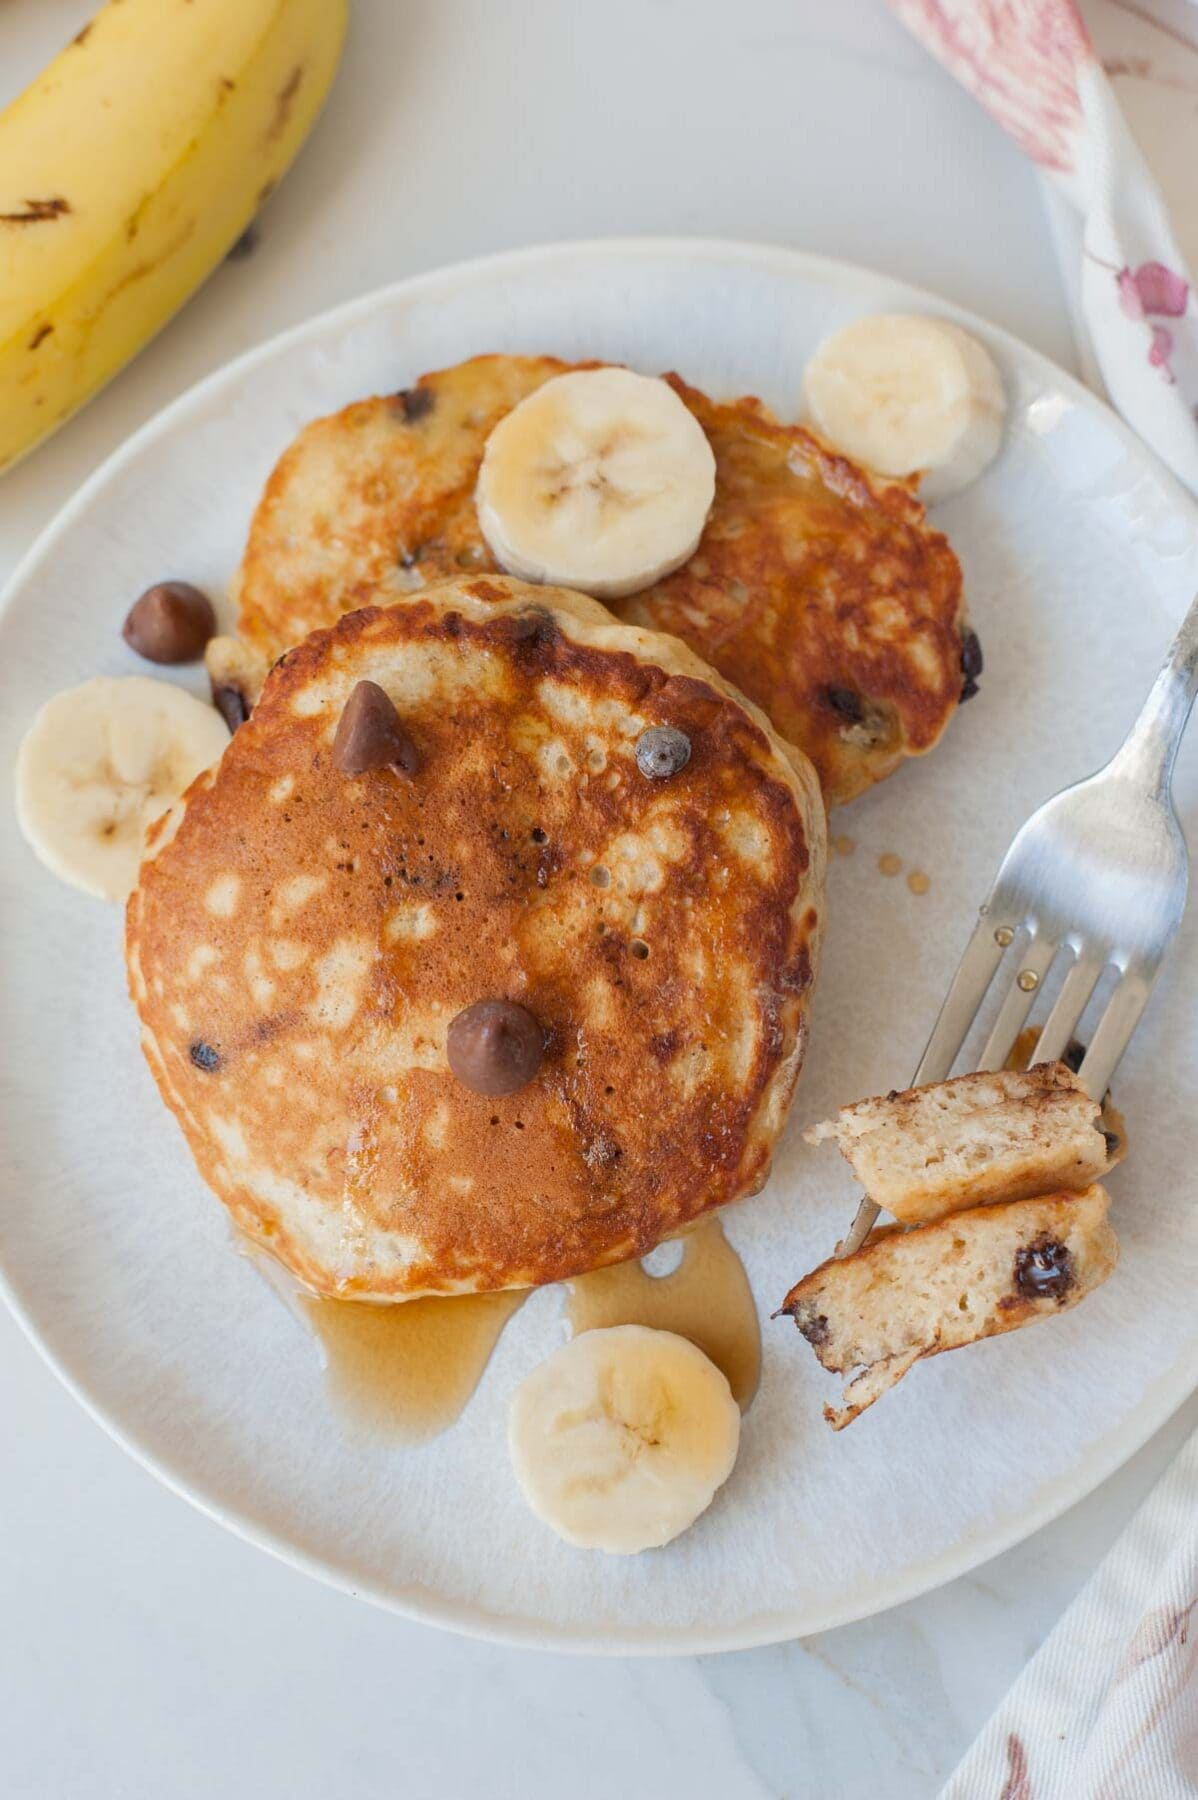 two banana chocolate chip pancakes on a white plate, fork and sliced bananas on the side